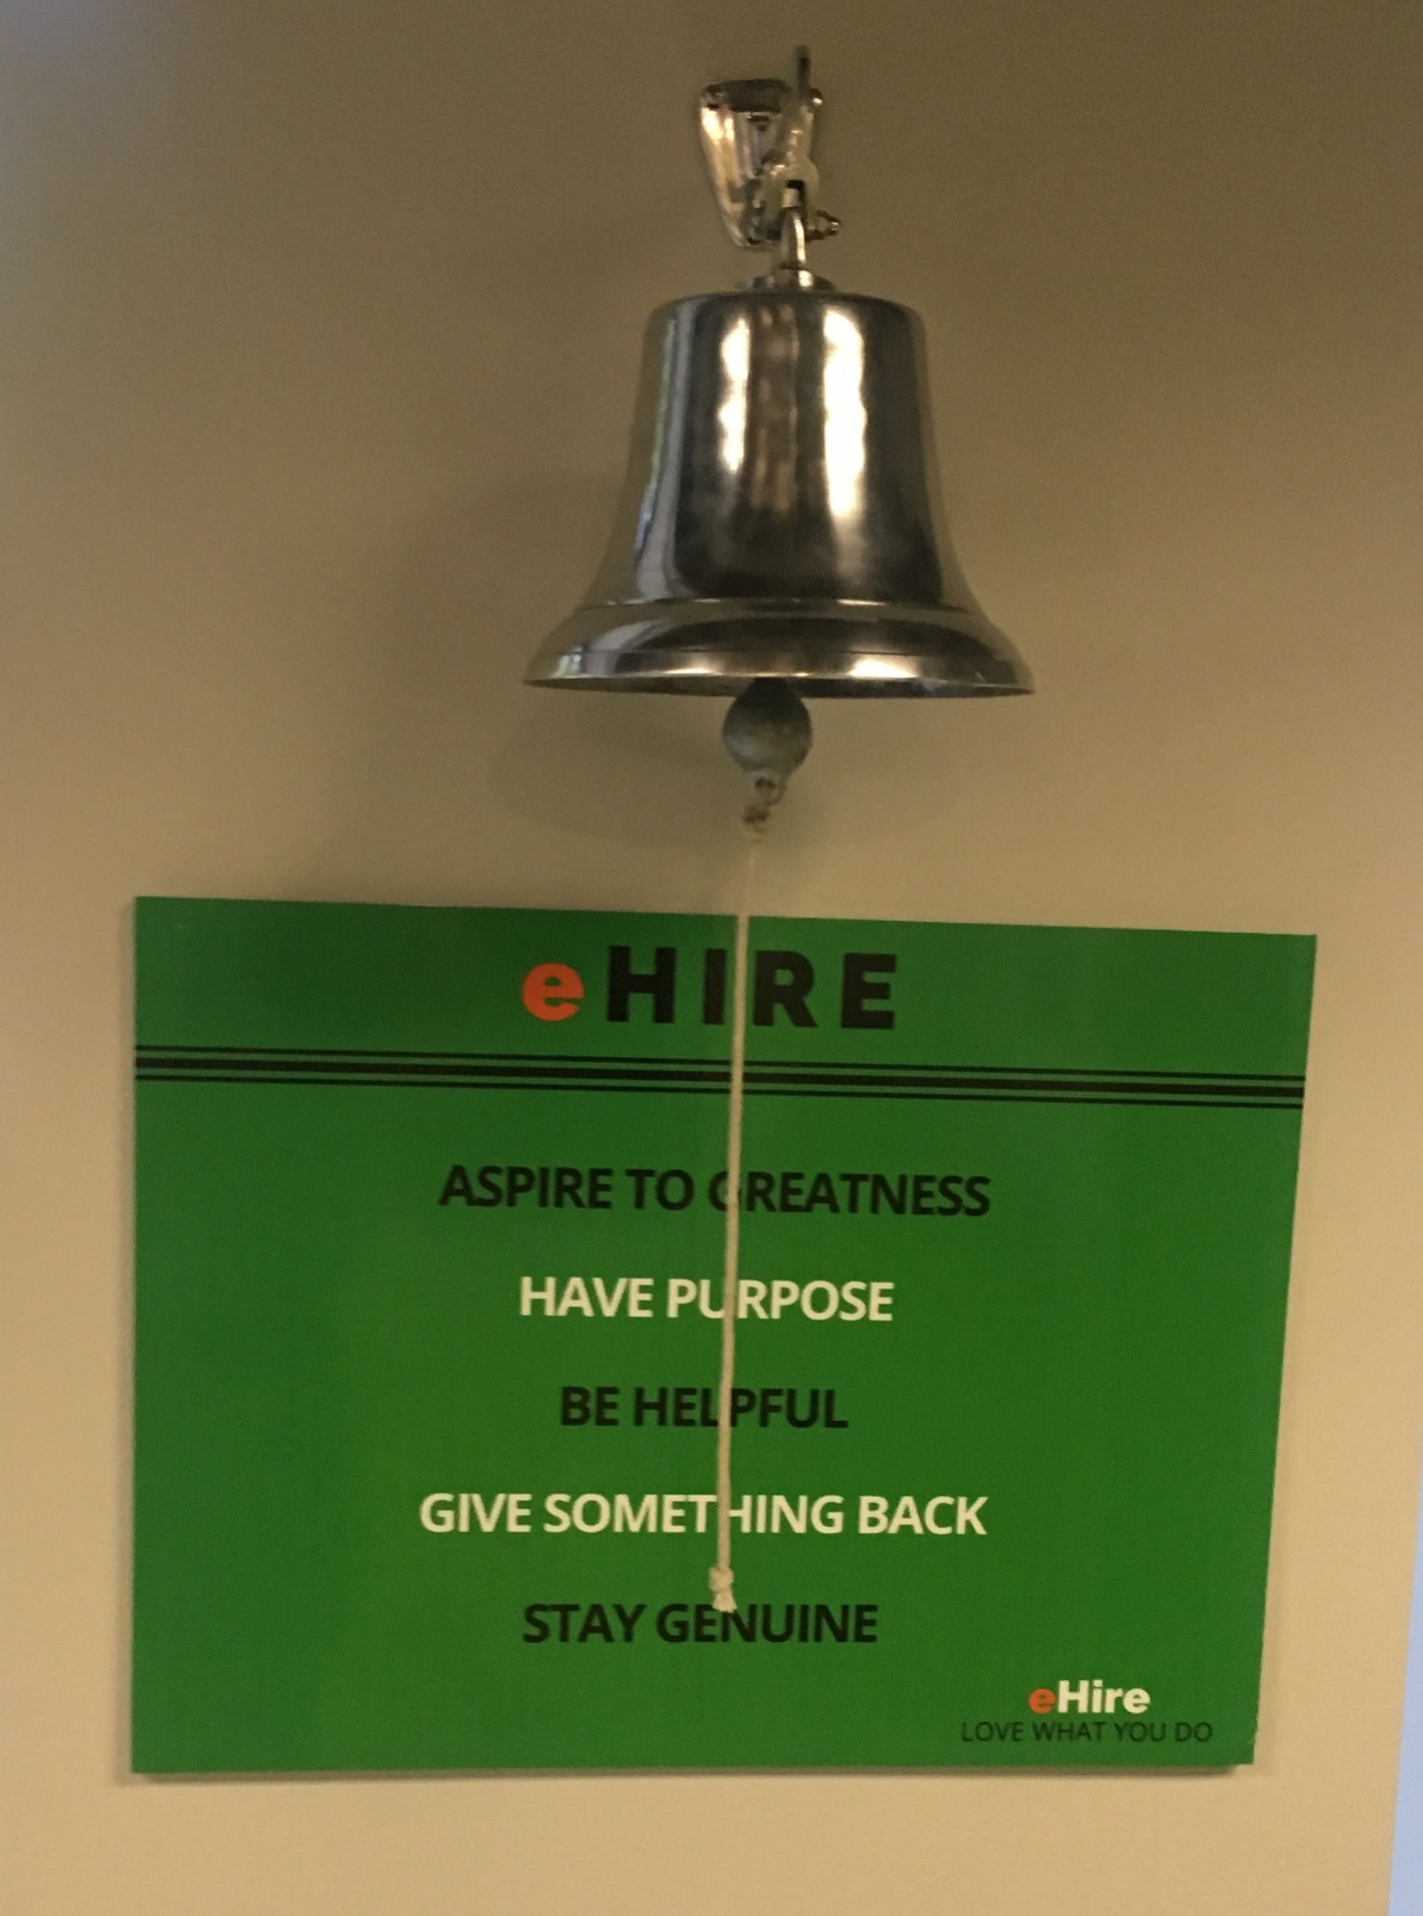 eHire celebrates sales successes, and immediately transitions to humility.